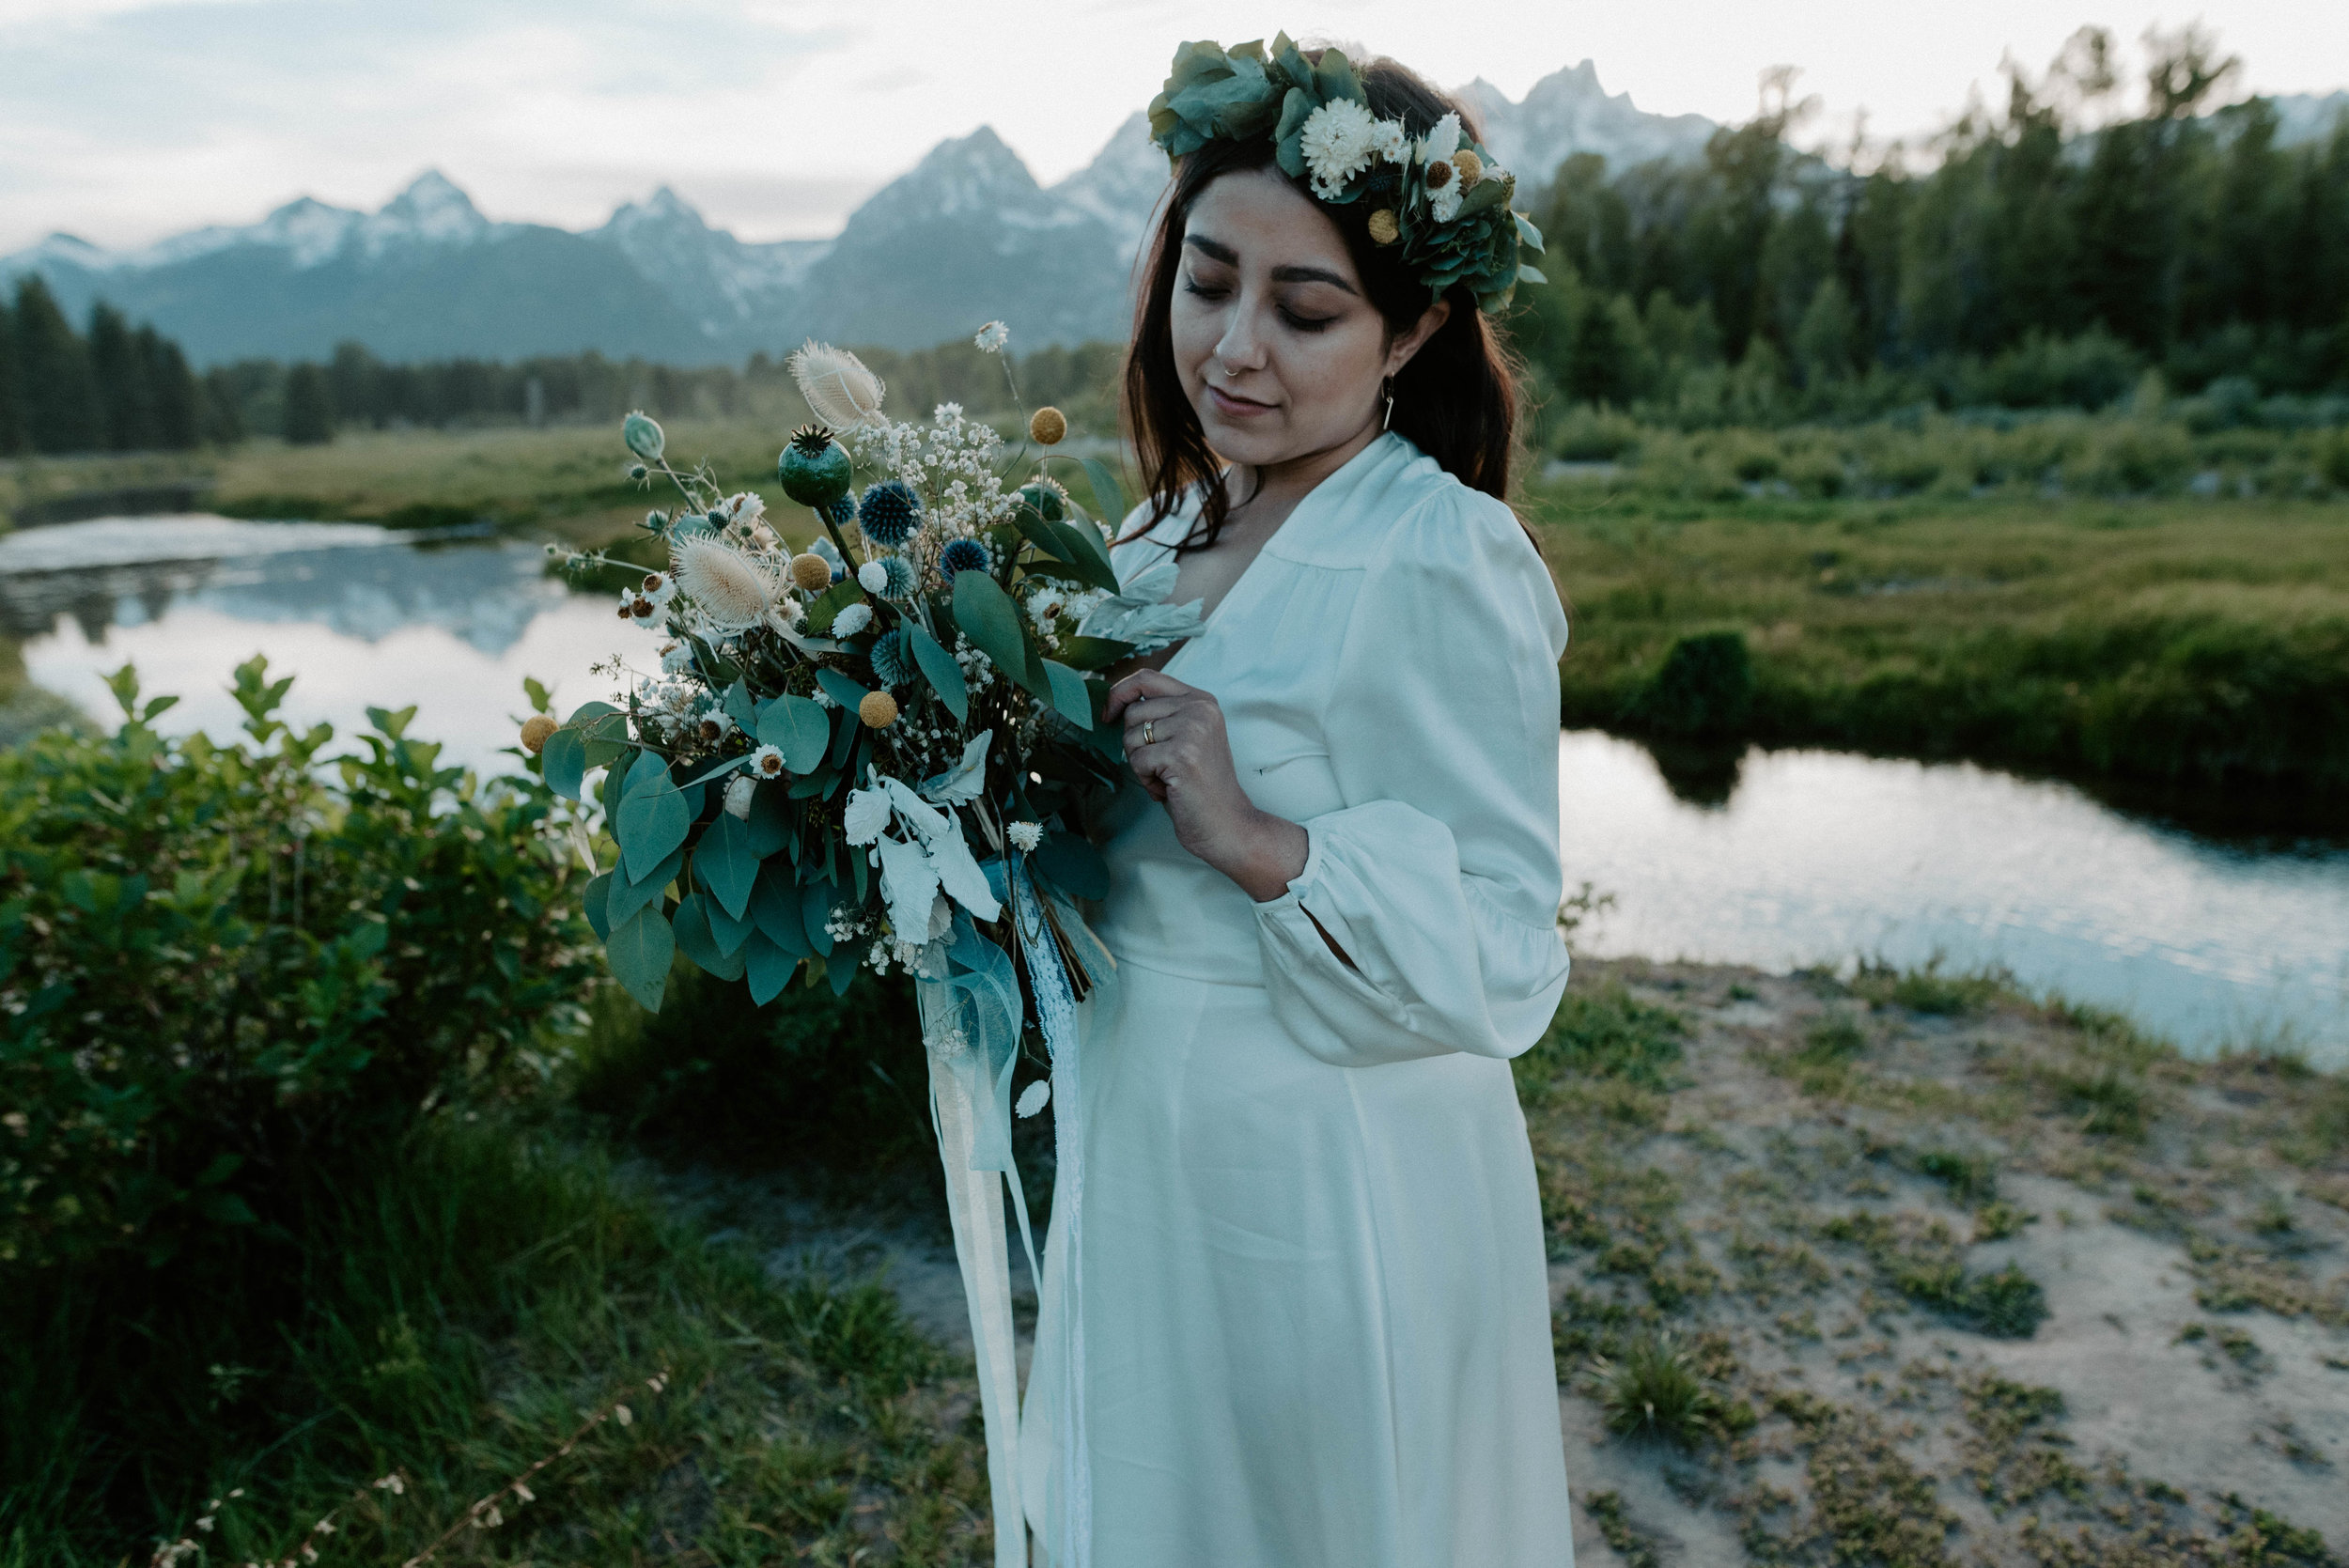 Grand_Teton_Elopement_Wyoming-30.jpg